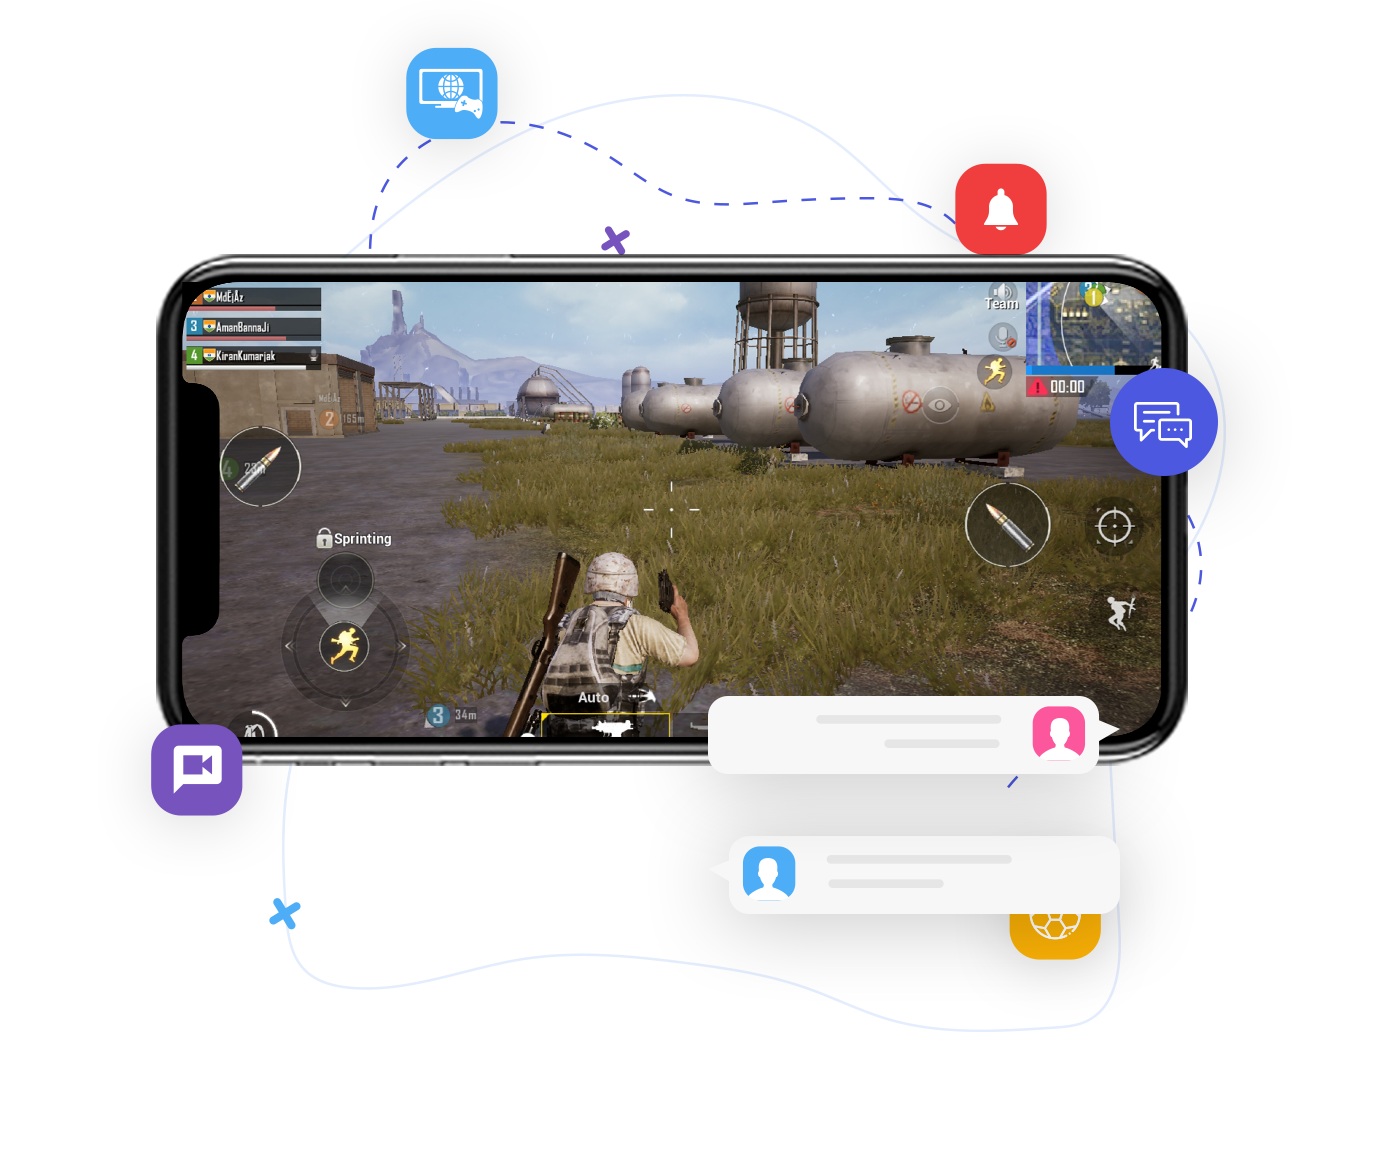 In app chat software for gaming industry